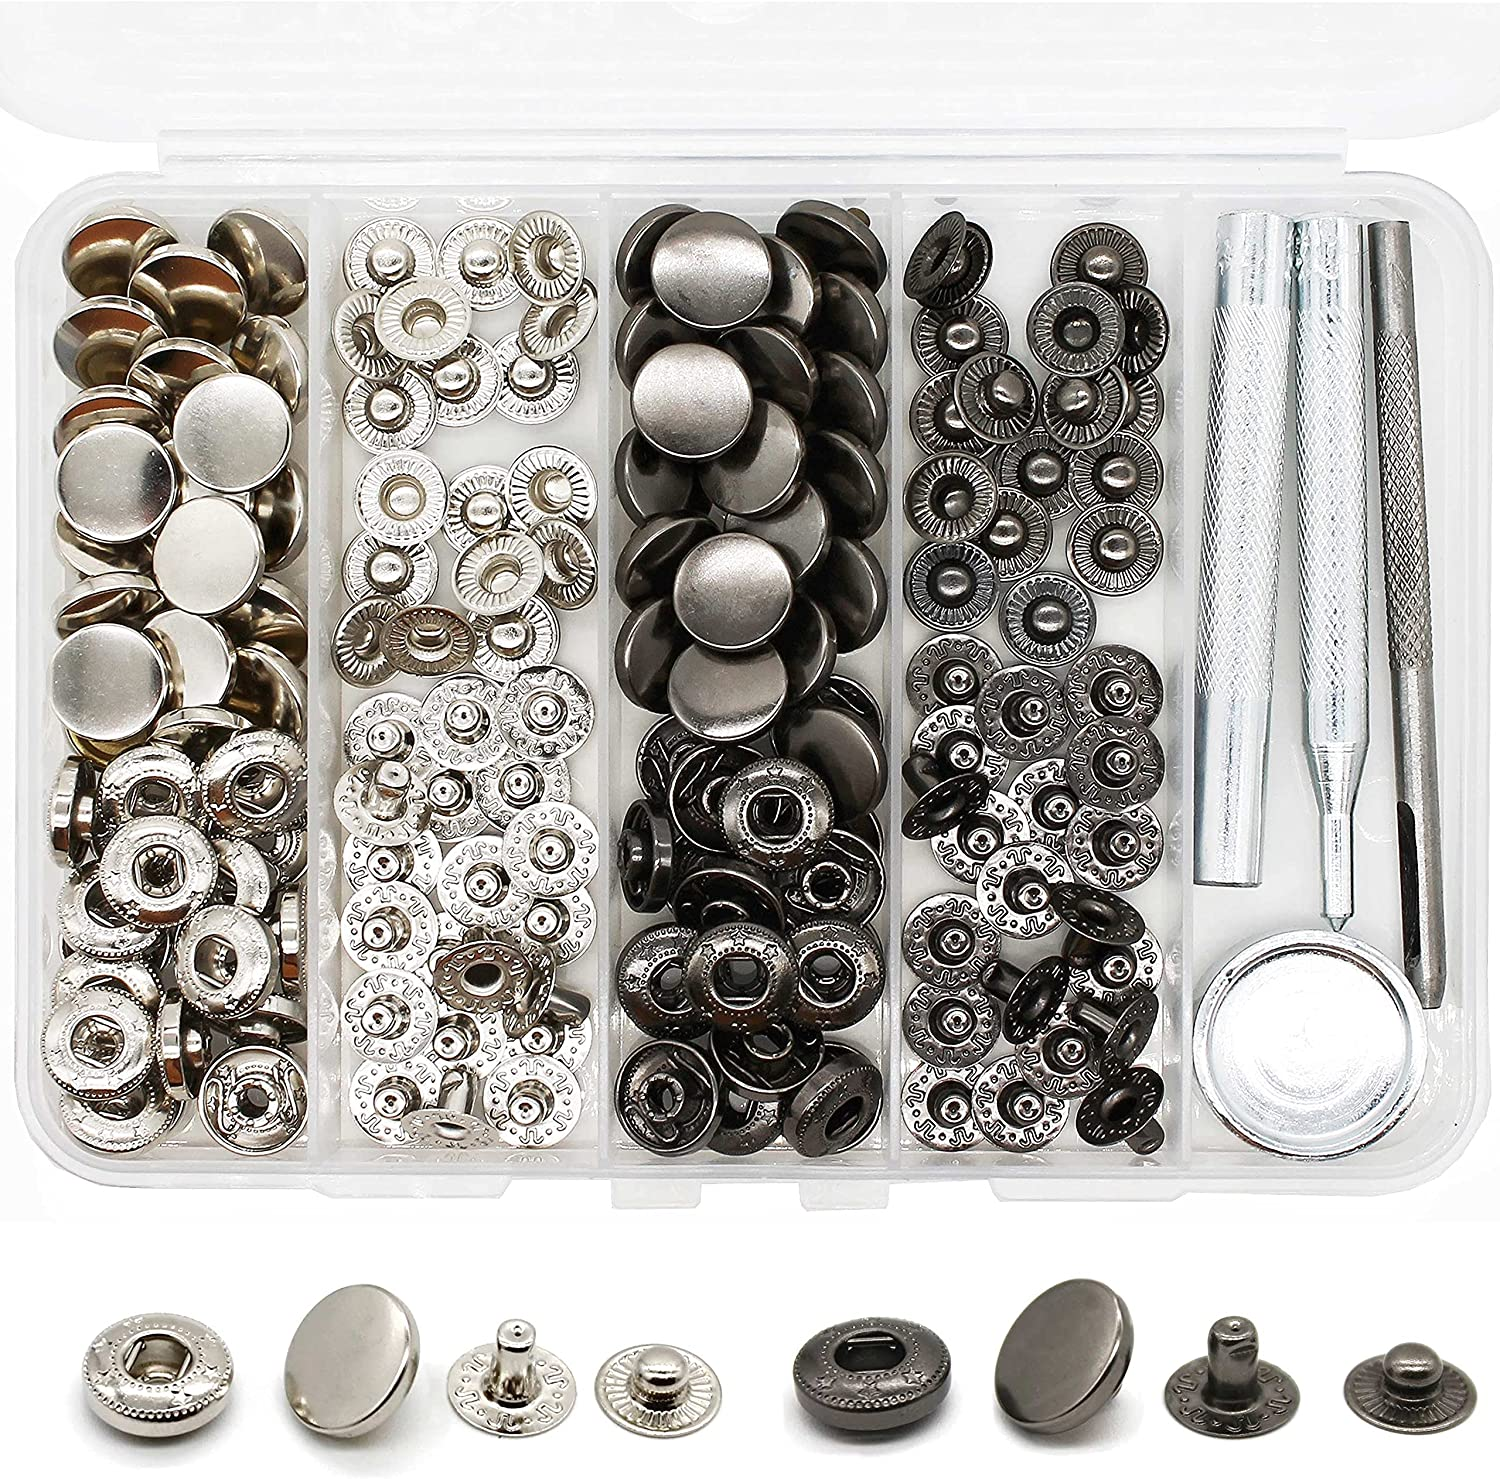 40 Sets Heavy Duty Leather Snap Fasteners Kit, 12.5mm Metal Snap Buttons Kit Press Studs with 4 Install Tools, Leather Rivets and Snaps for Clothing, Leather, Jeans, Jackets, Bracelets, Bags (Line 20)